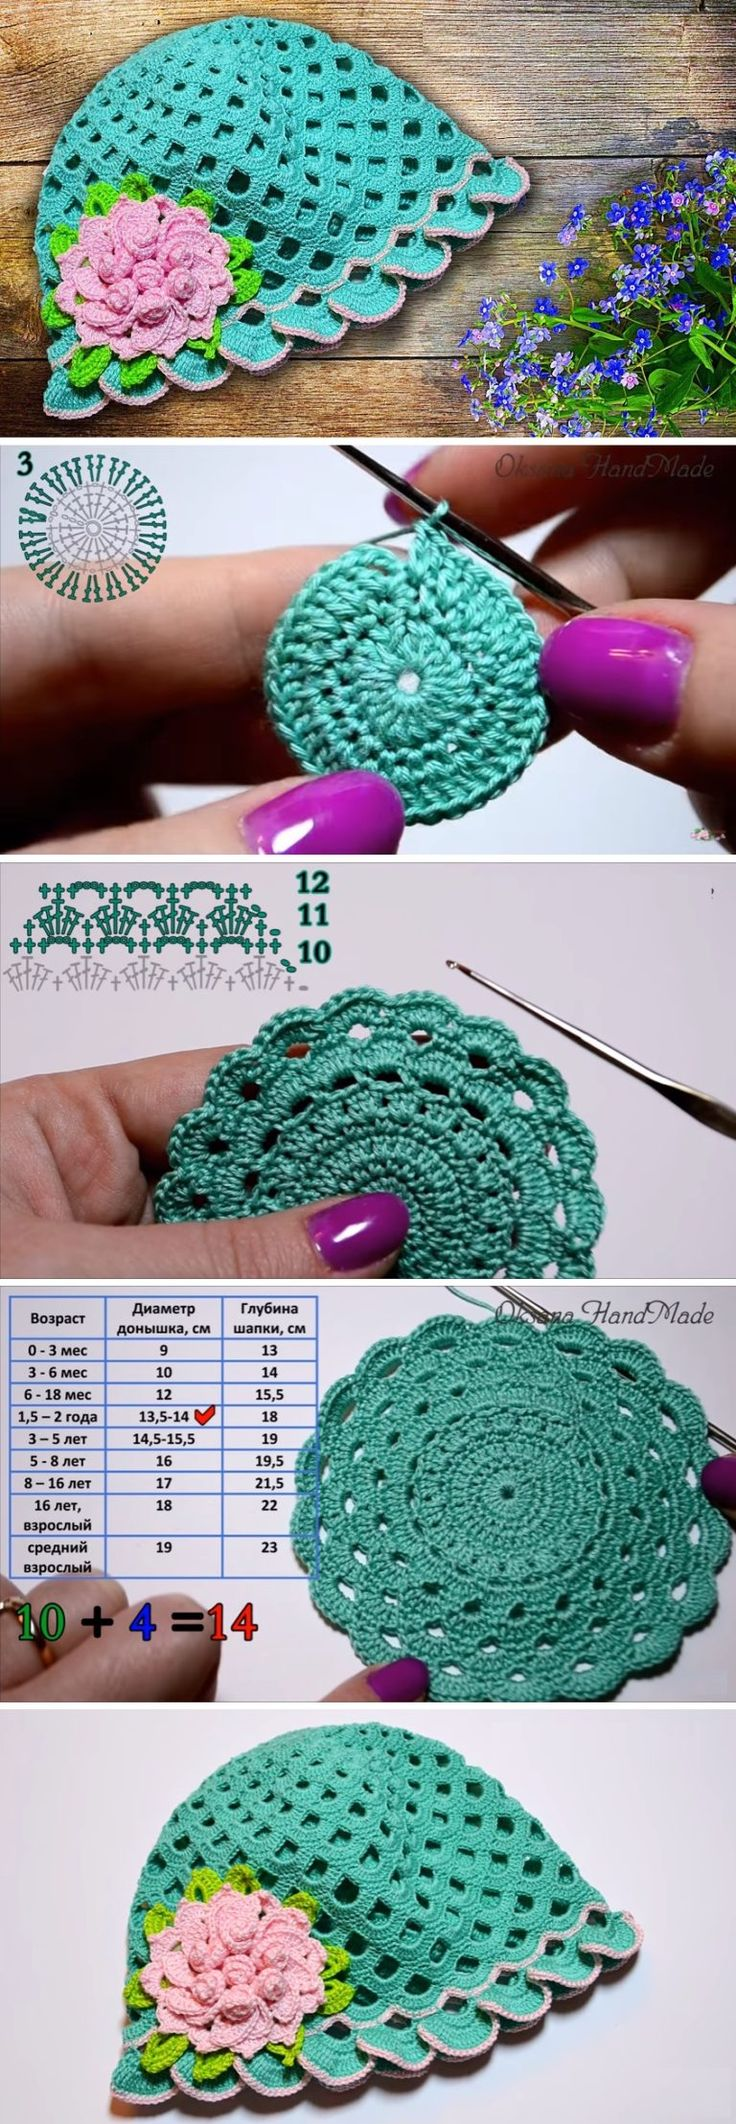 Crochet Retro Hat Tutorial | Knitting Embroidery Videos and Lessons